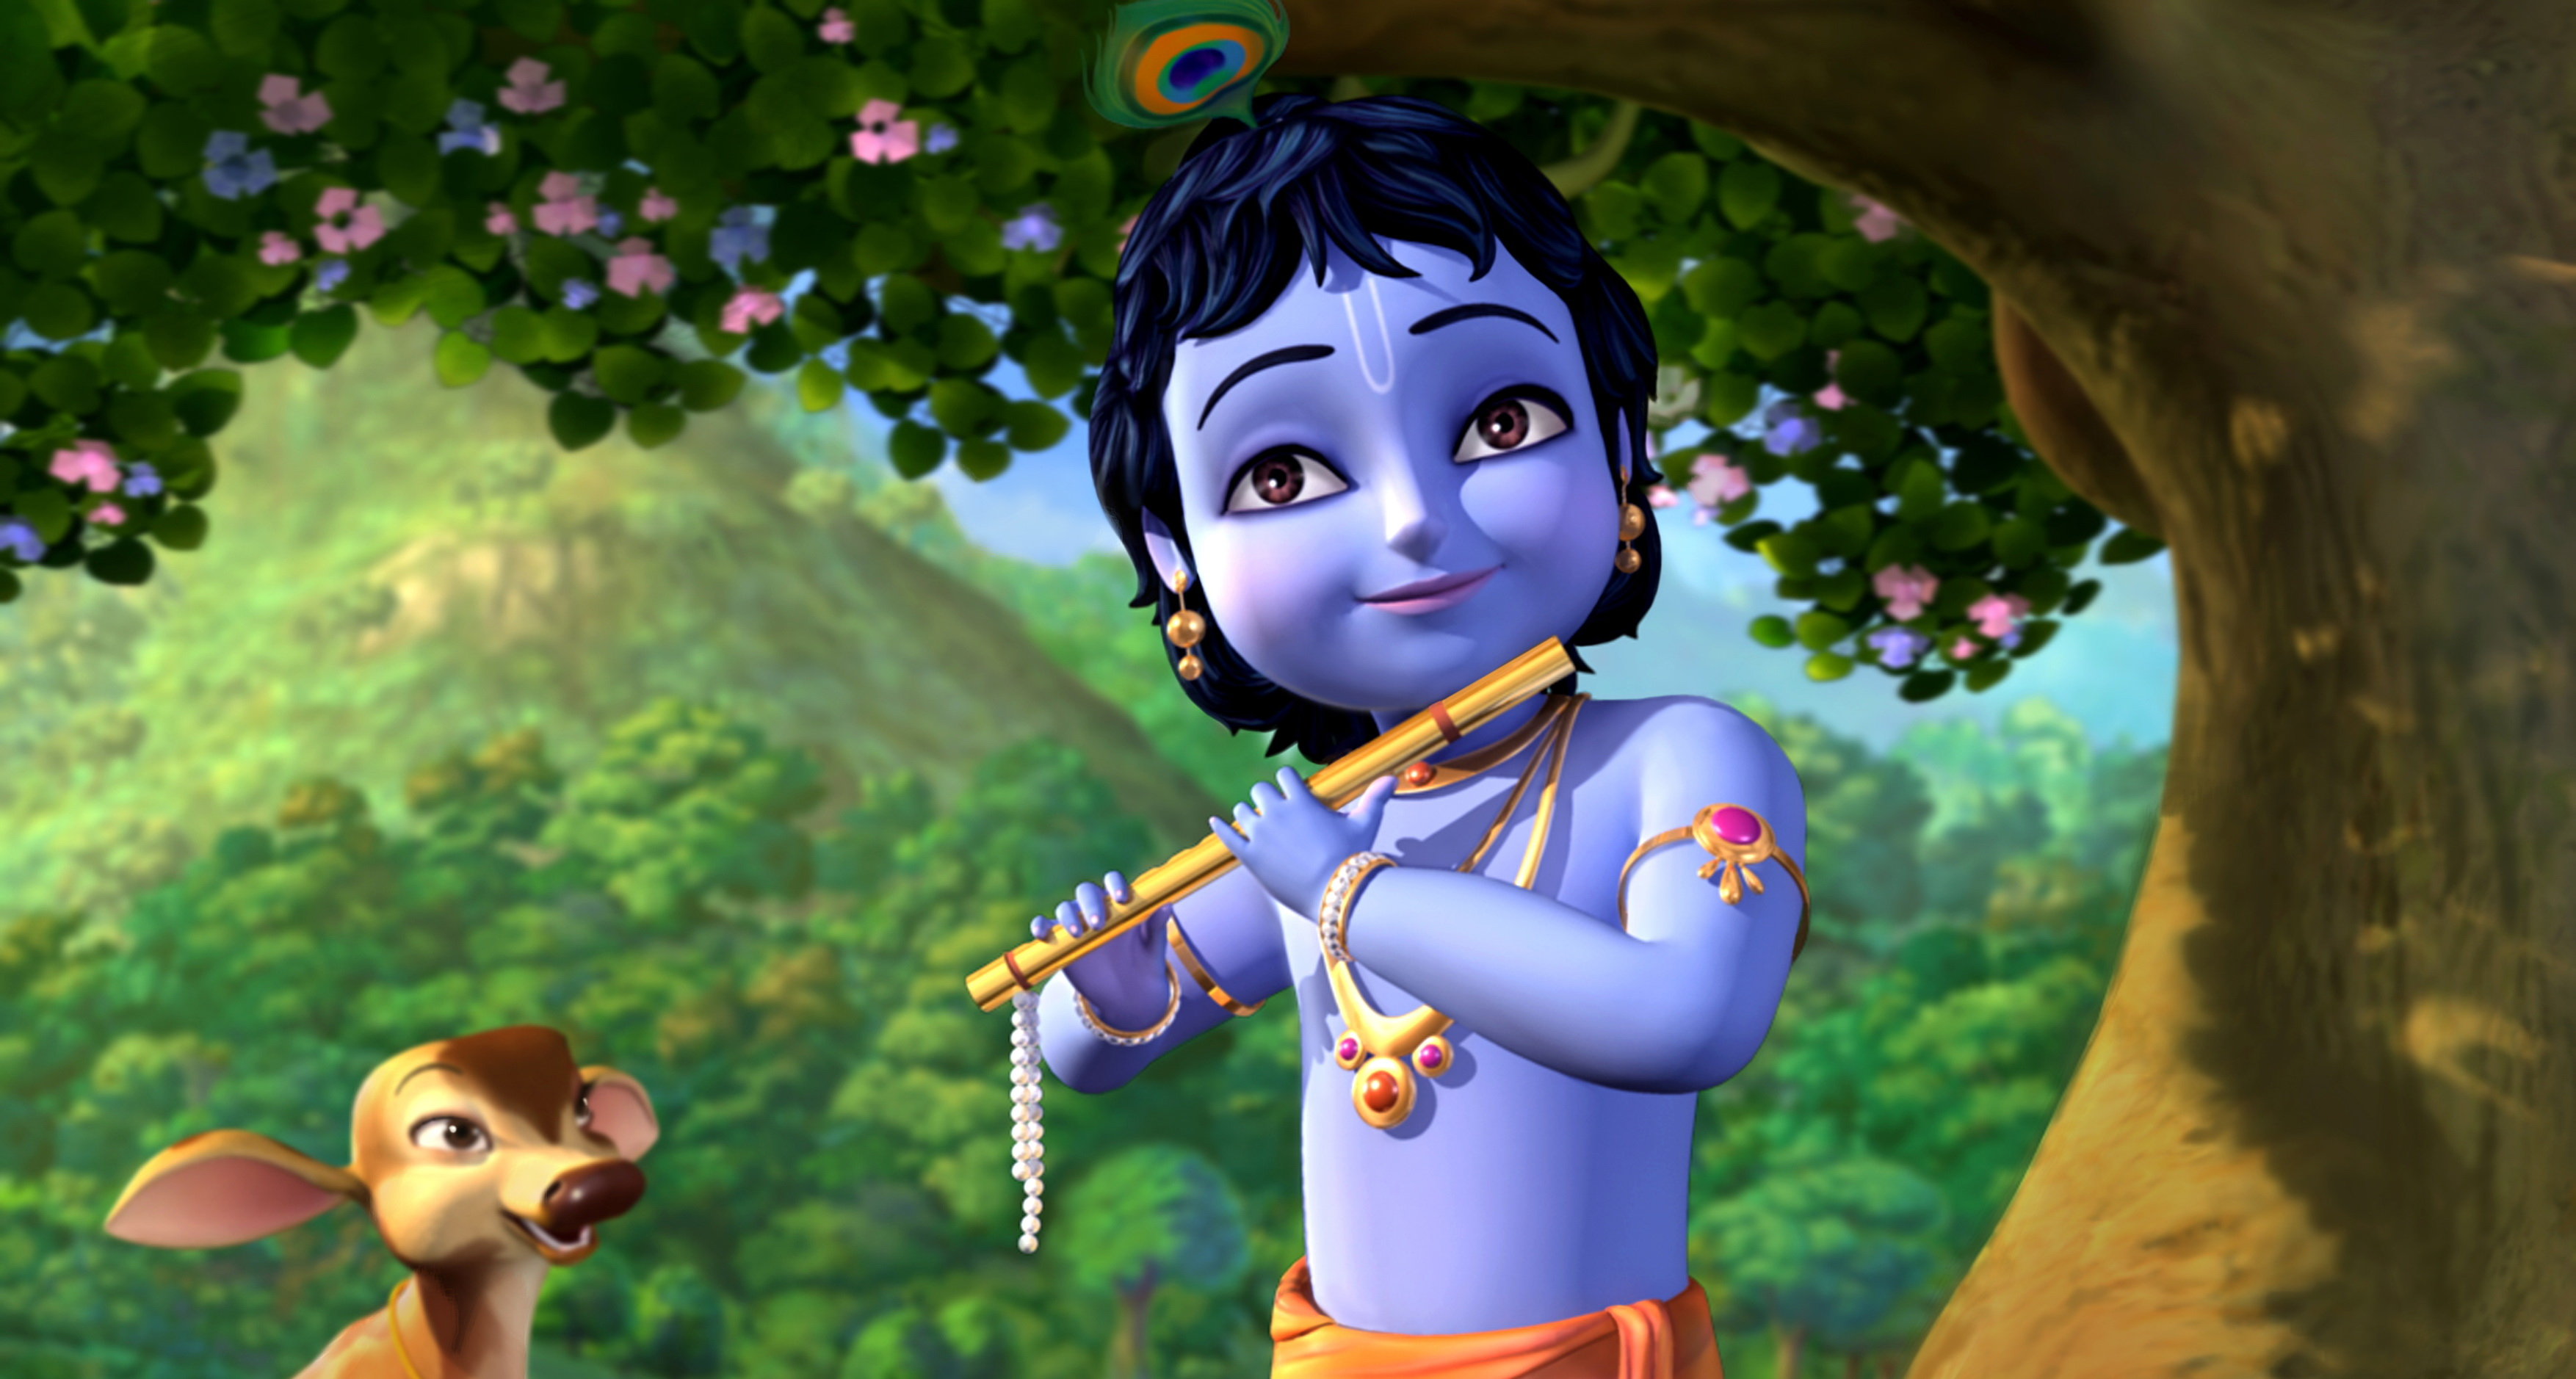 Little Krishna Hd Wallpaper Background Image 3508x1878